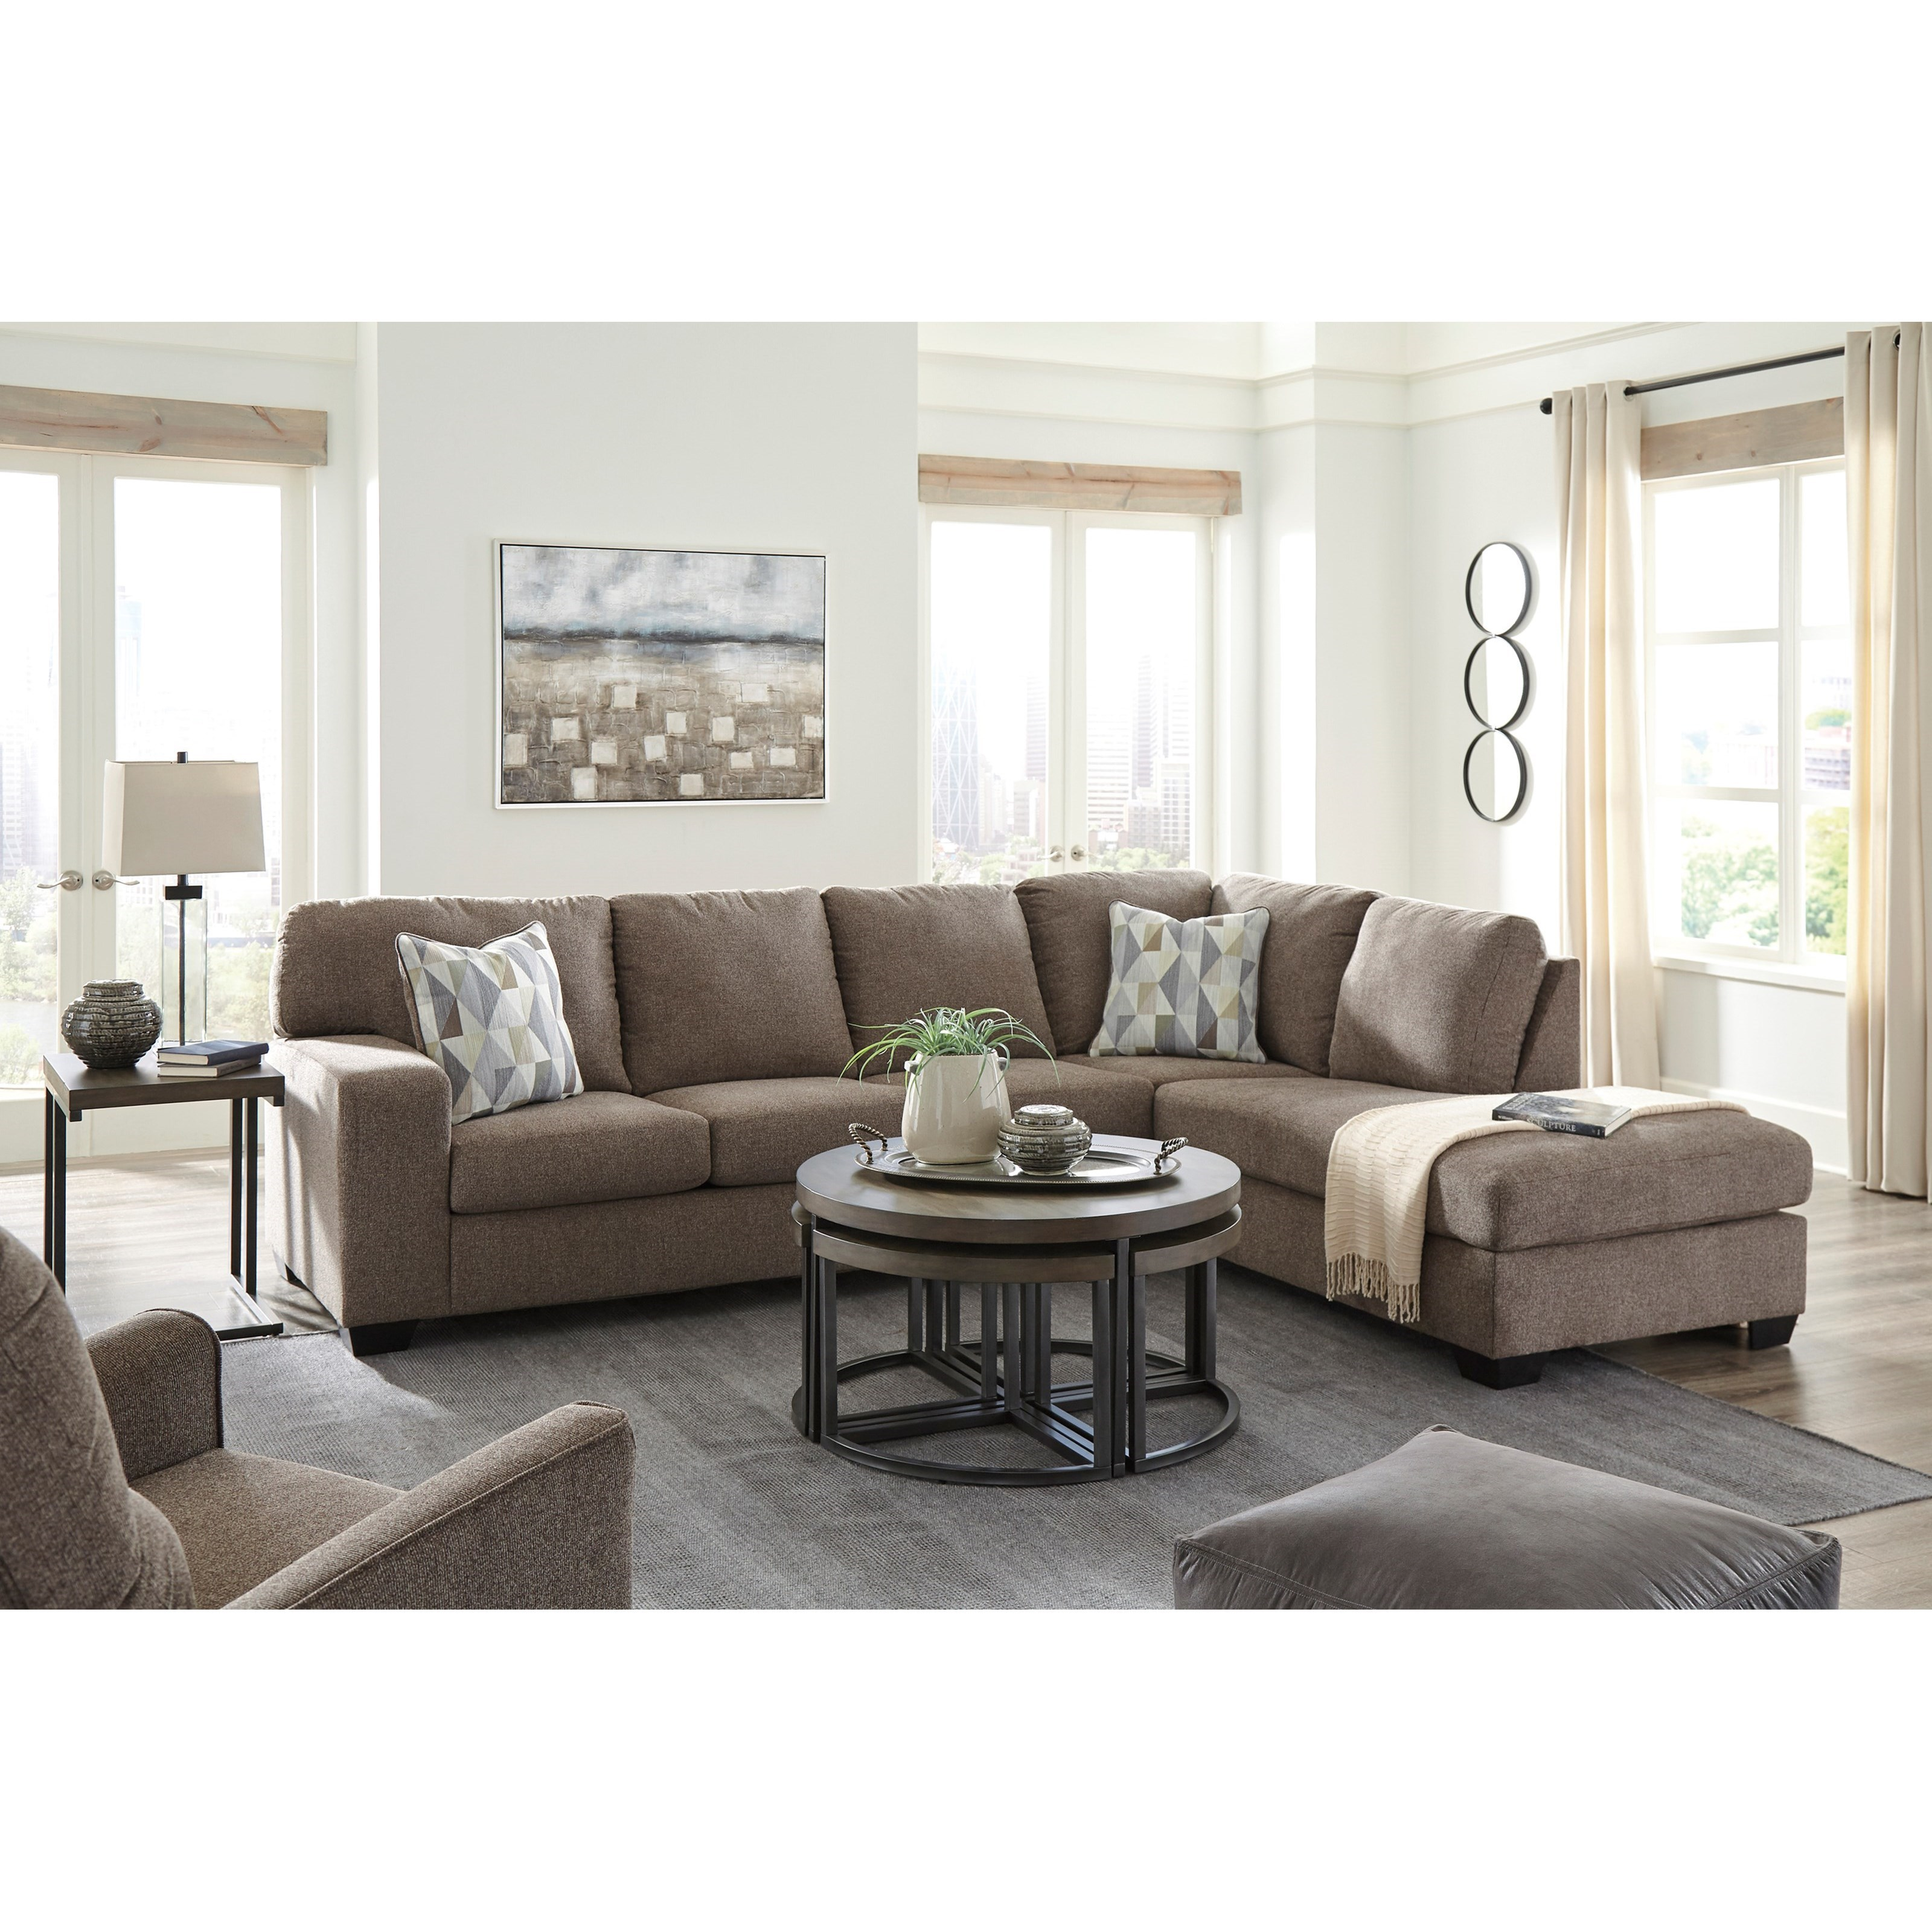 Dalhart Living Room Group by Benchcraft at Northeast Factory Direct